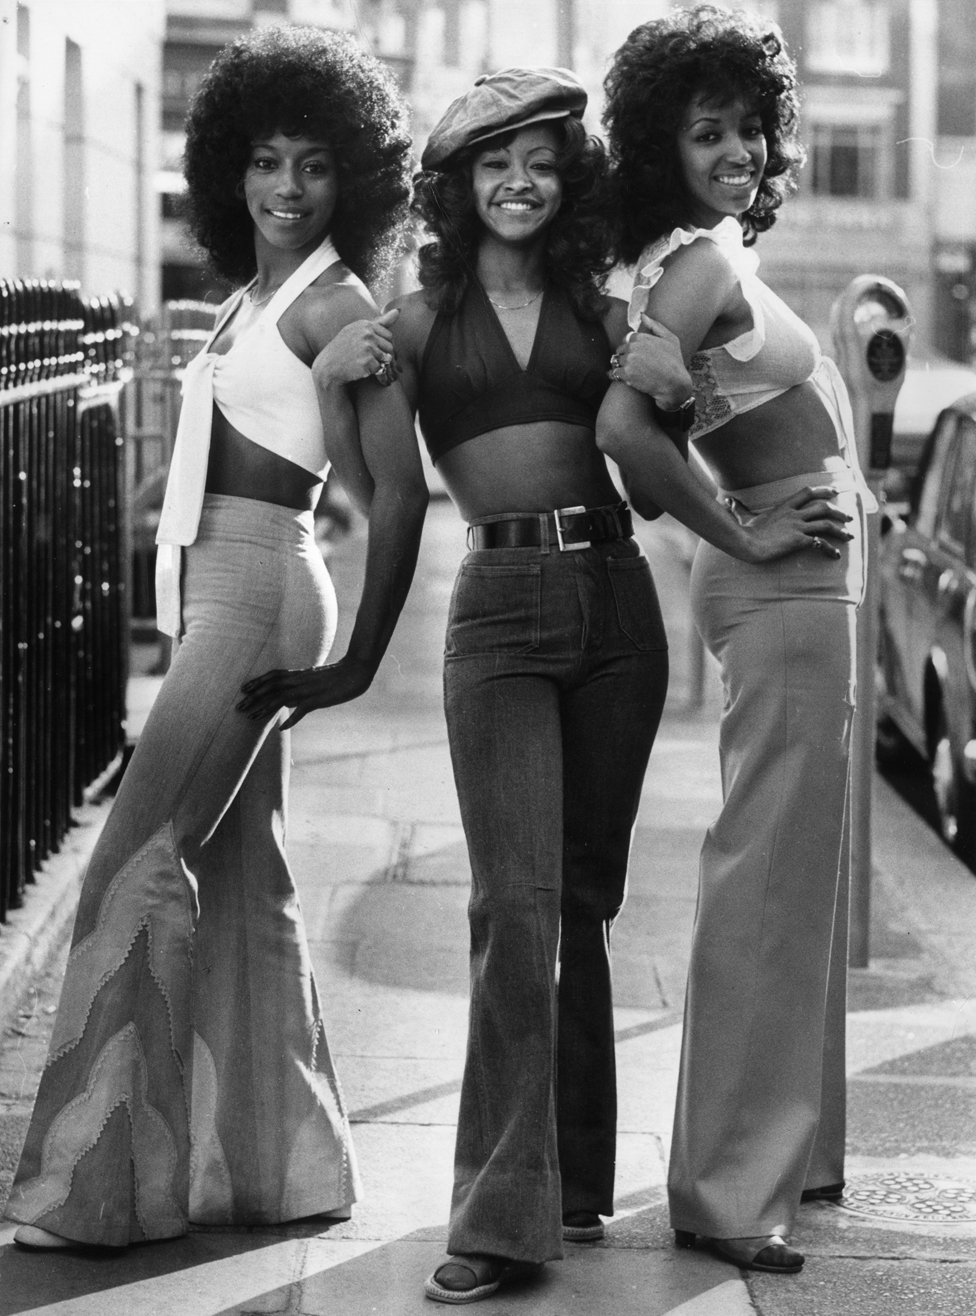 The Three Degrees in 1974 - Sheila Ferguson, Valerie Holiday and Fayette Pinkney